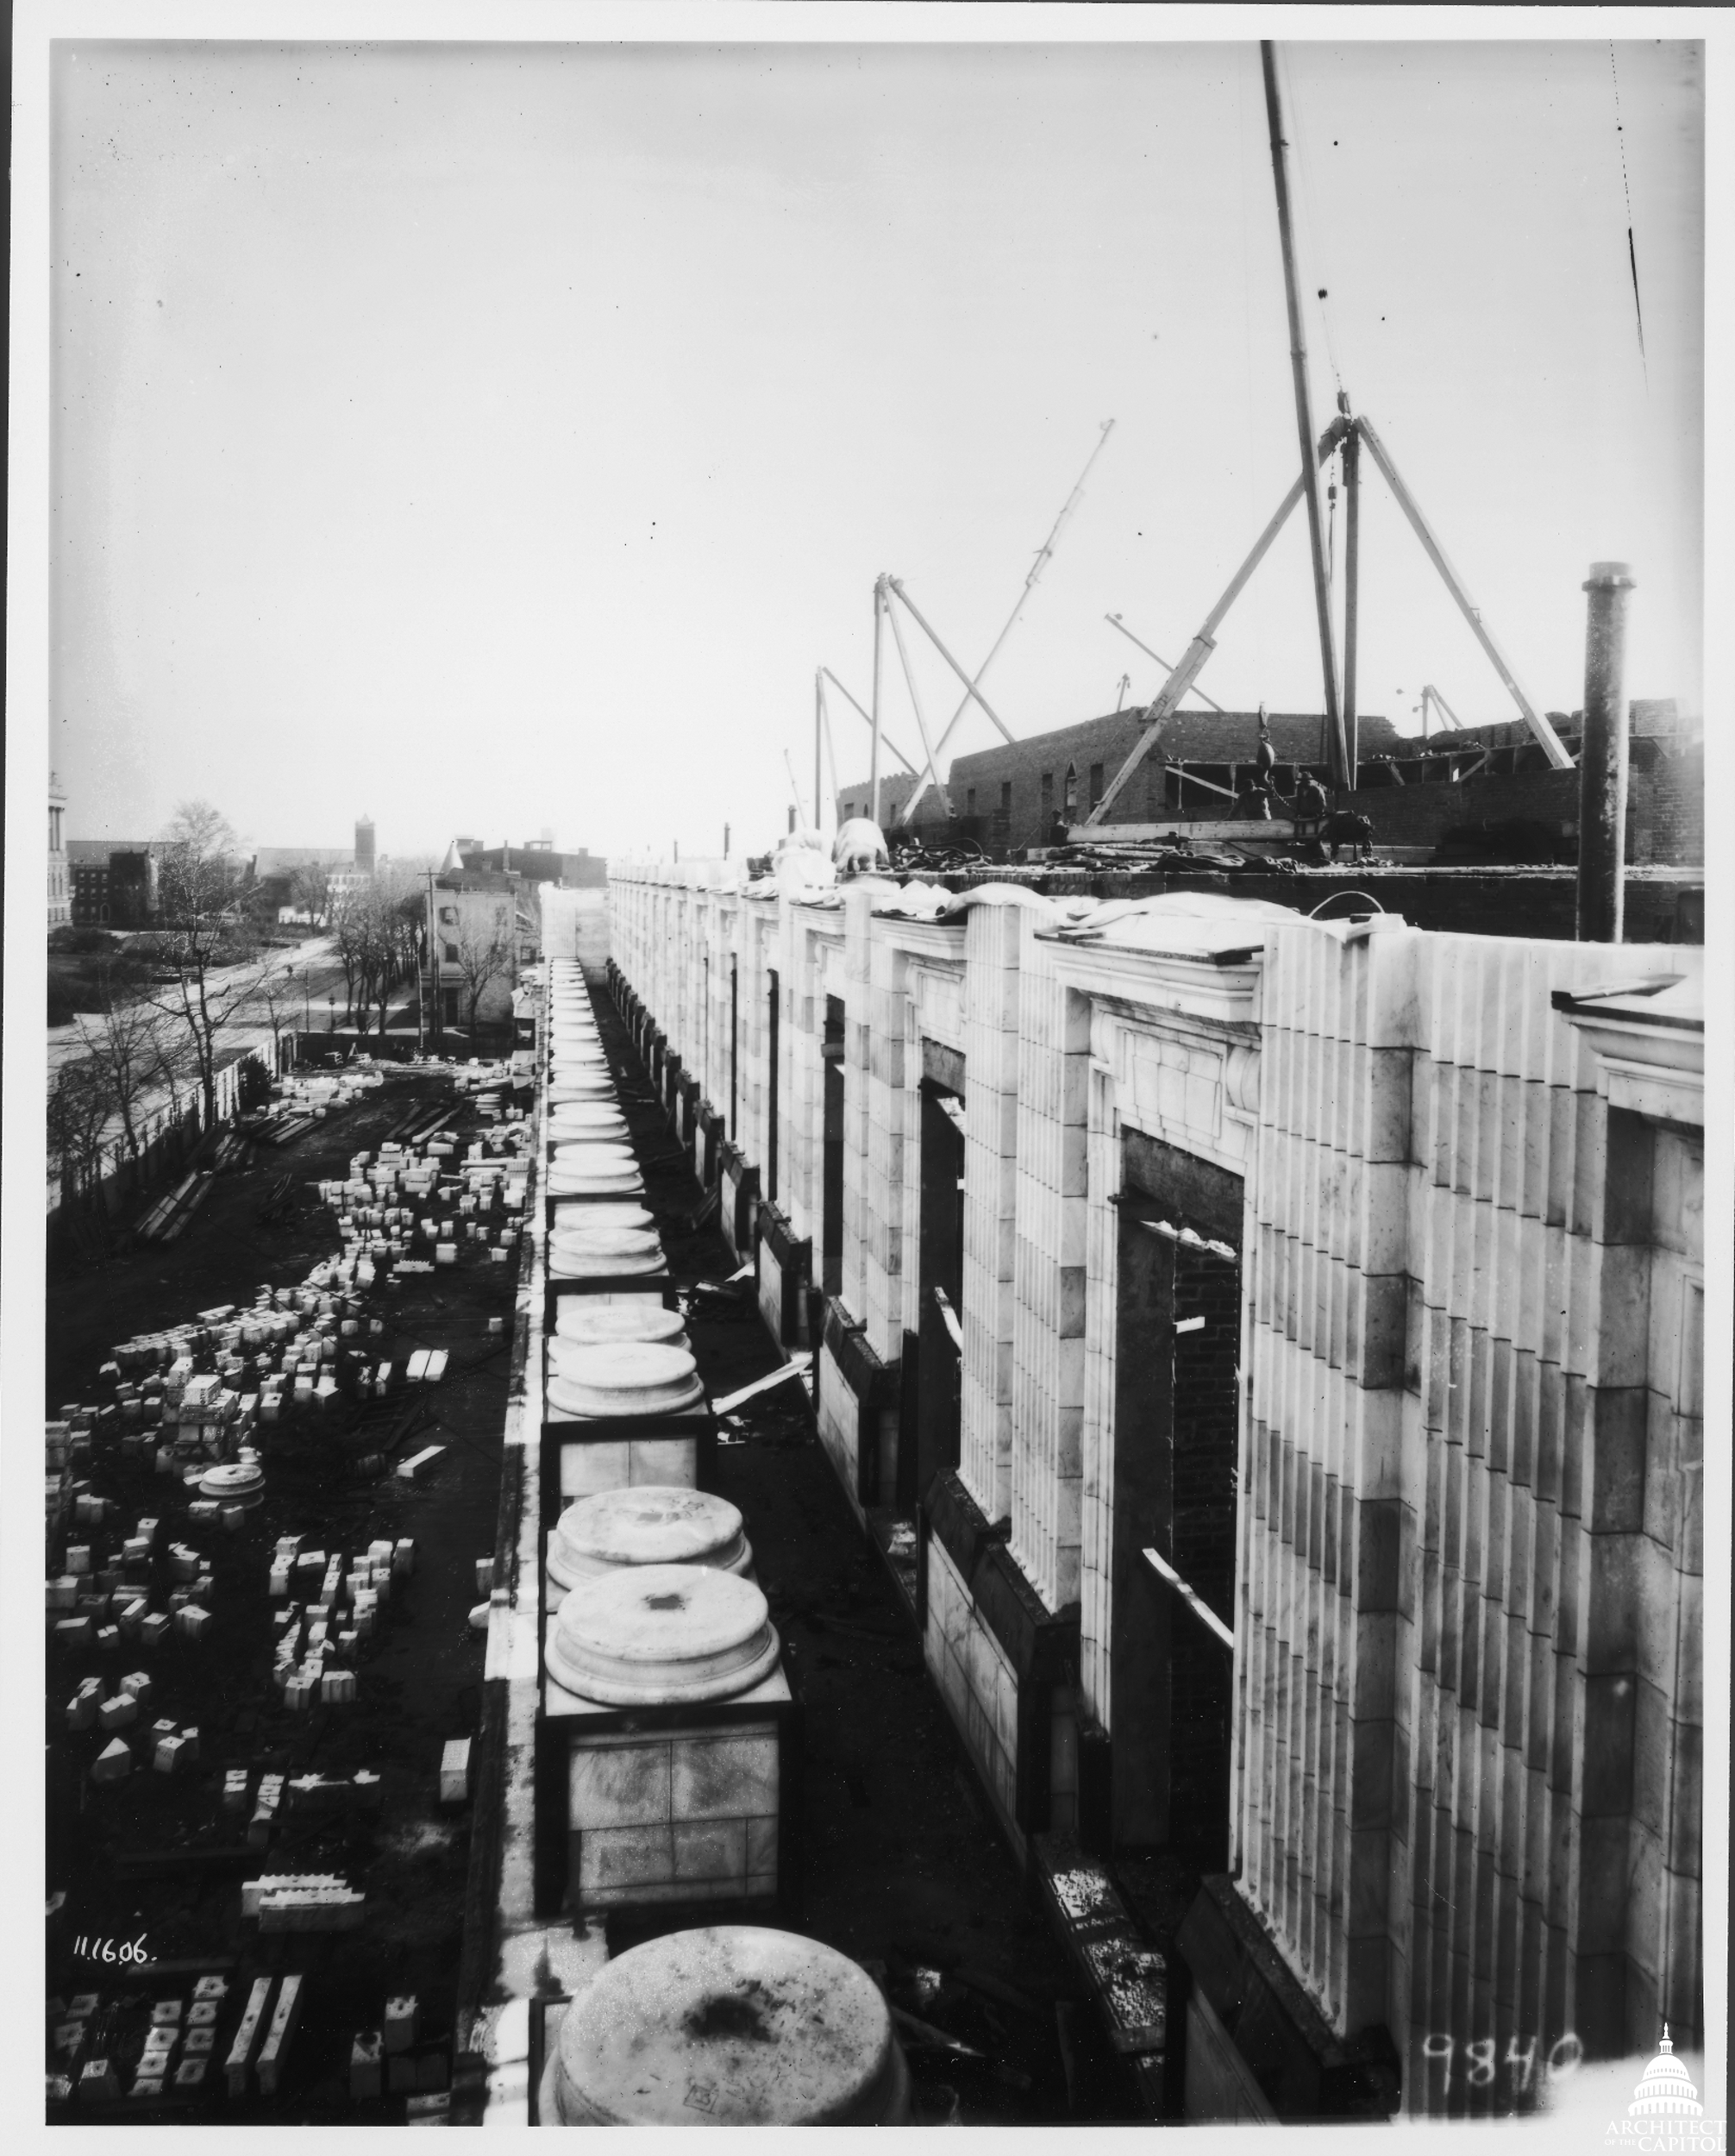 Column bases in place during the construction of the Cannon Building's colonnade in November 1906.